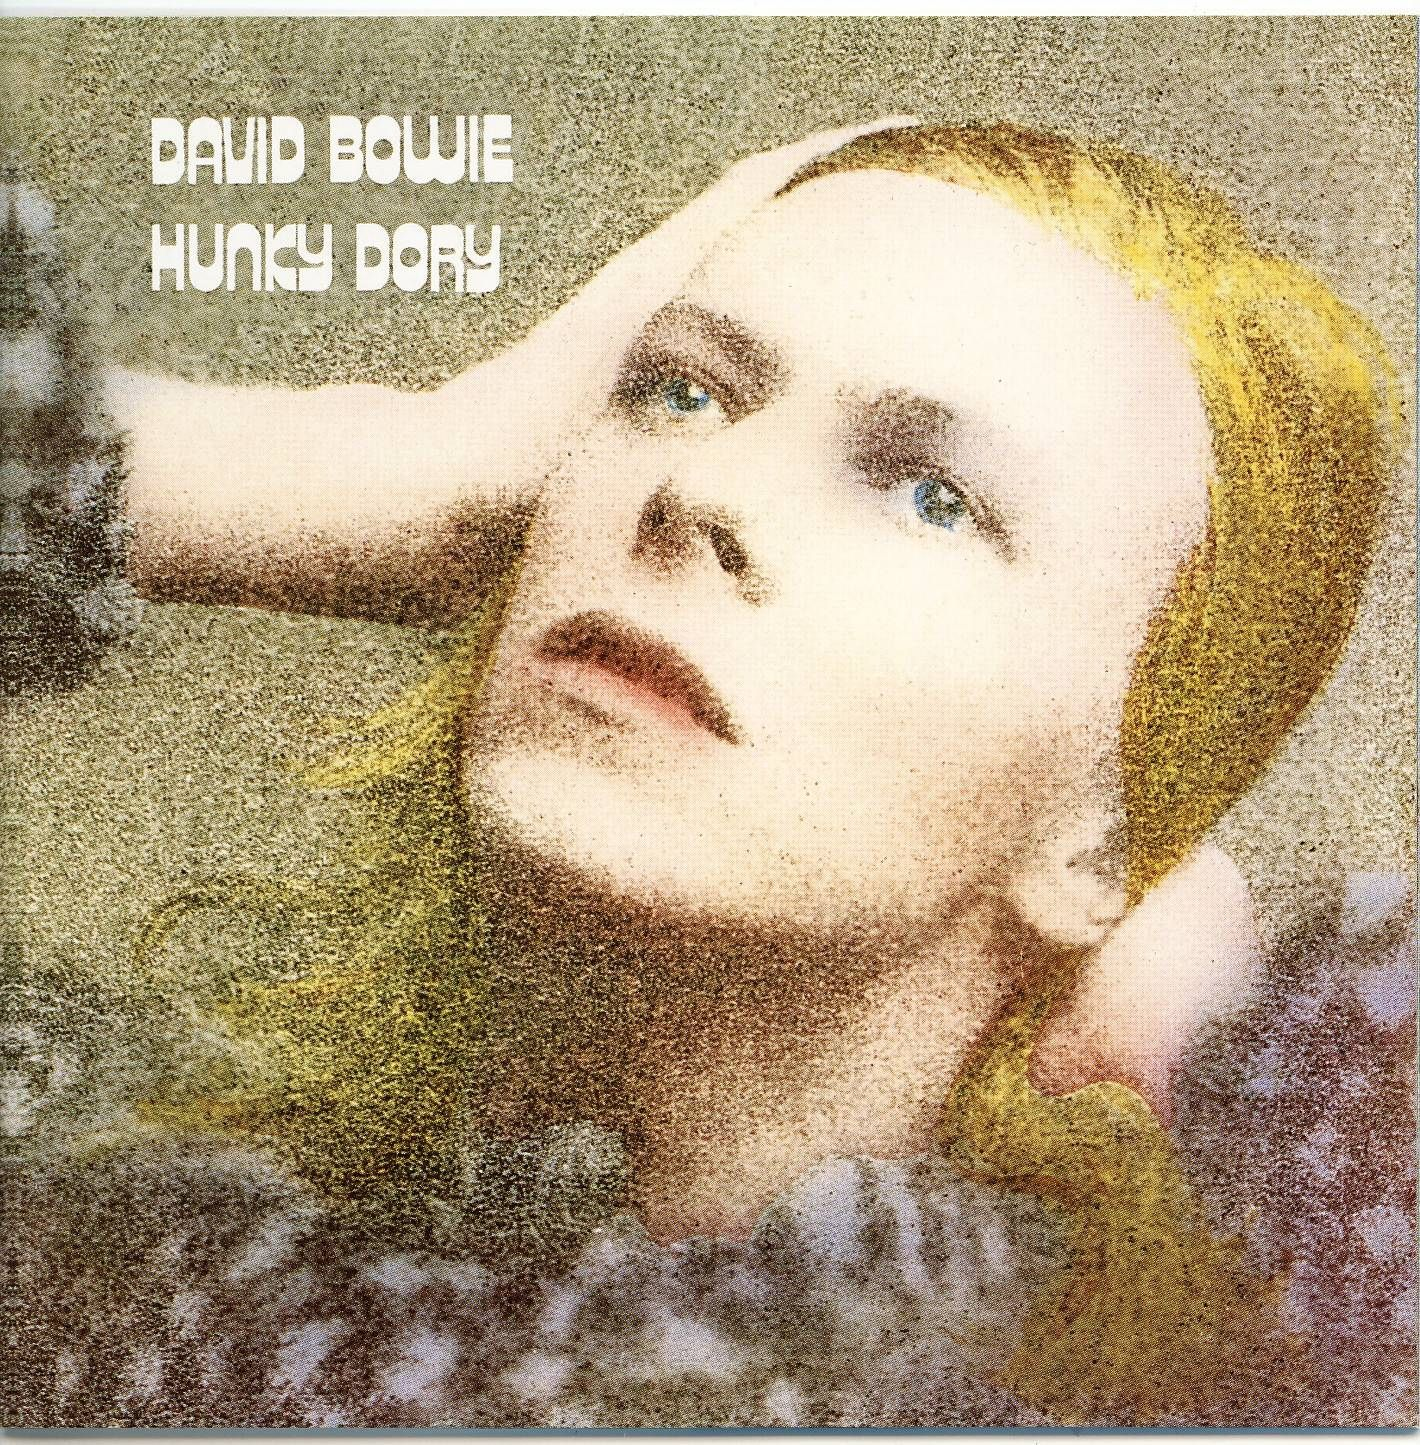 David Bowie Hunky Dory Cover Art By George Underwood Designer Illustrator And Painter Born In 1947 In London David Bowie Hunky Dory Hunky Dory Album Bowie